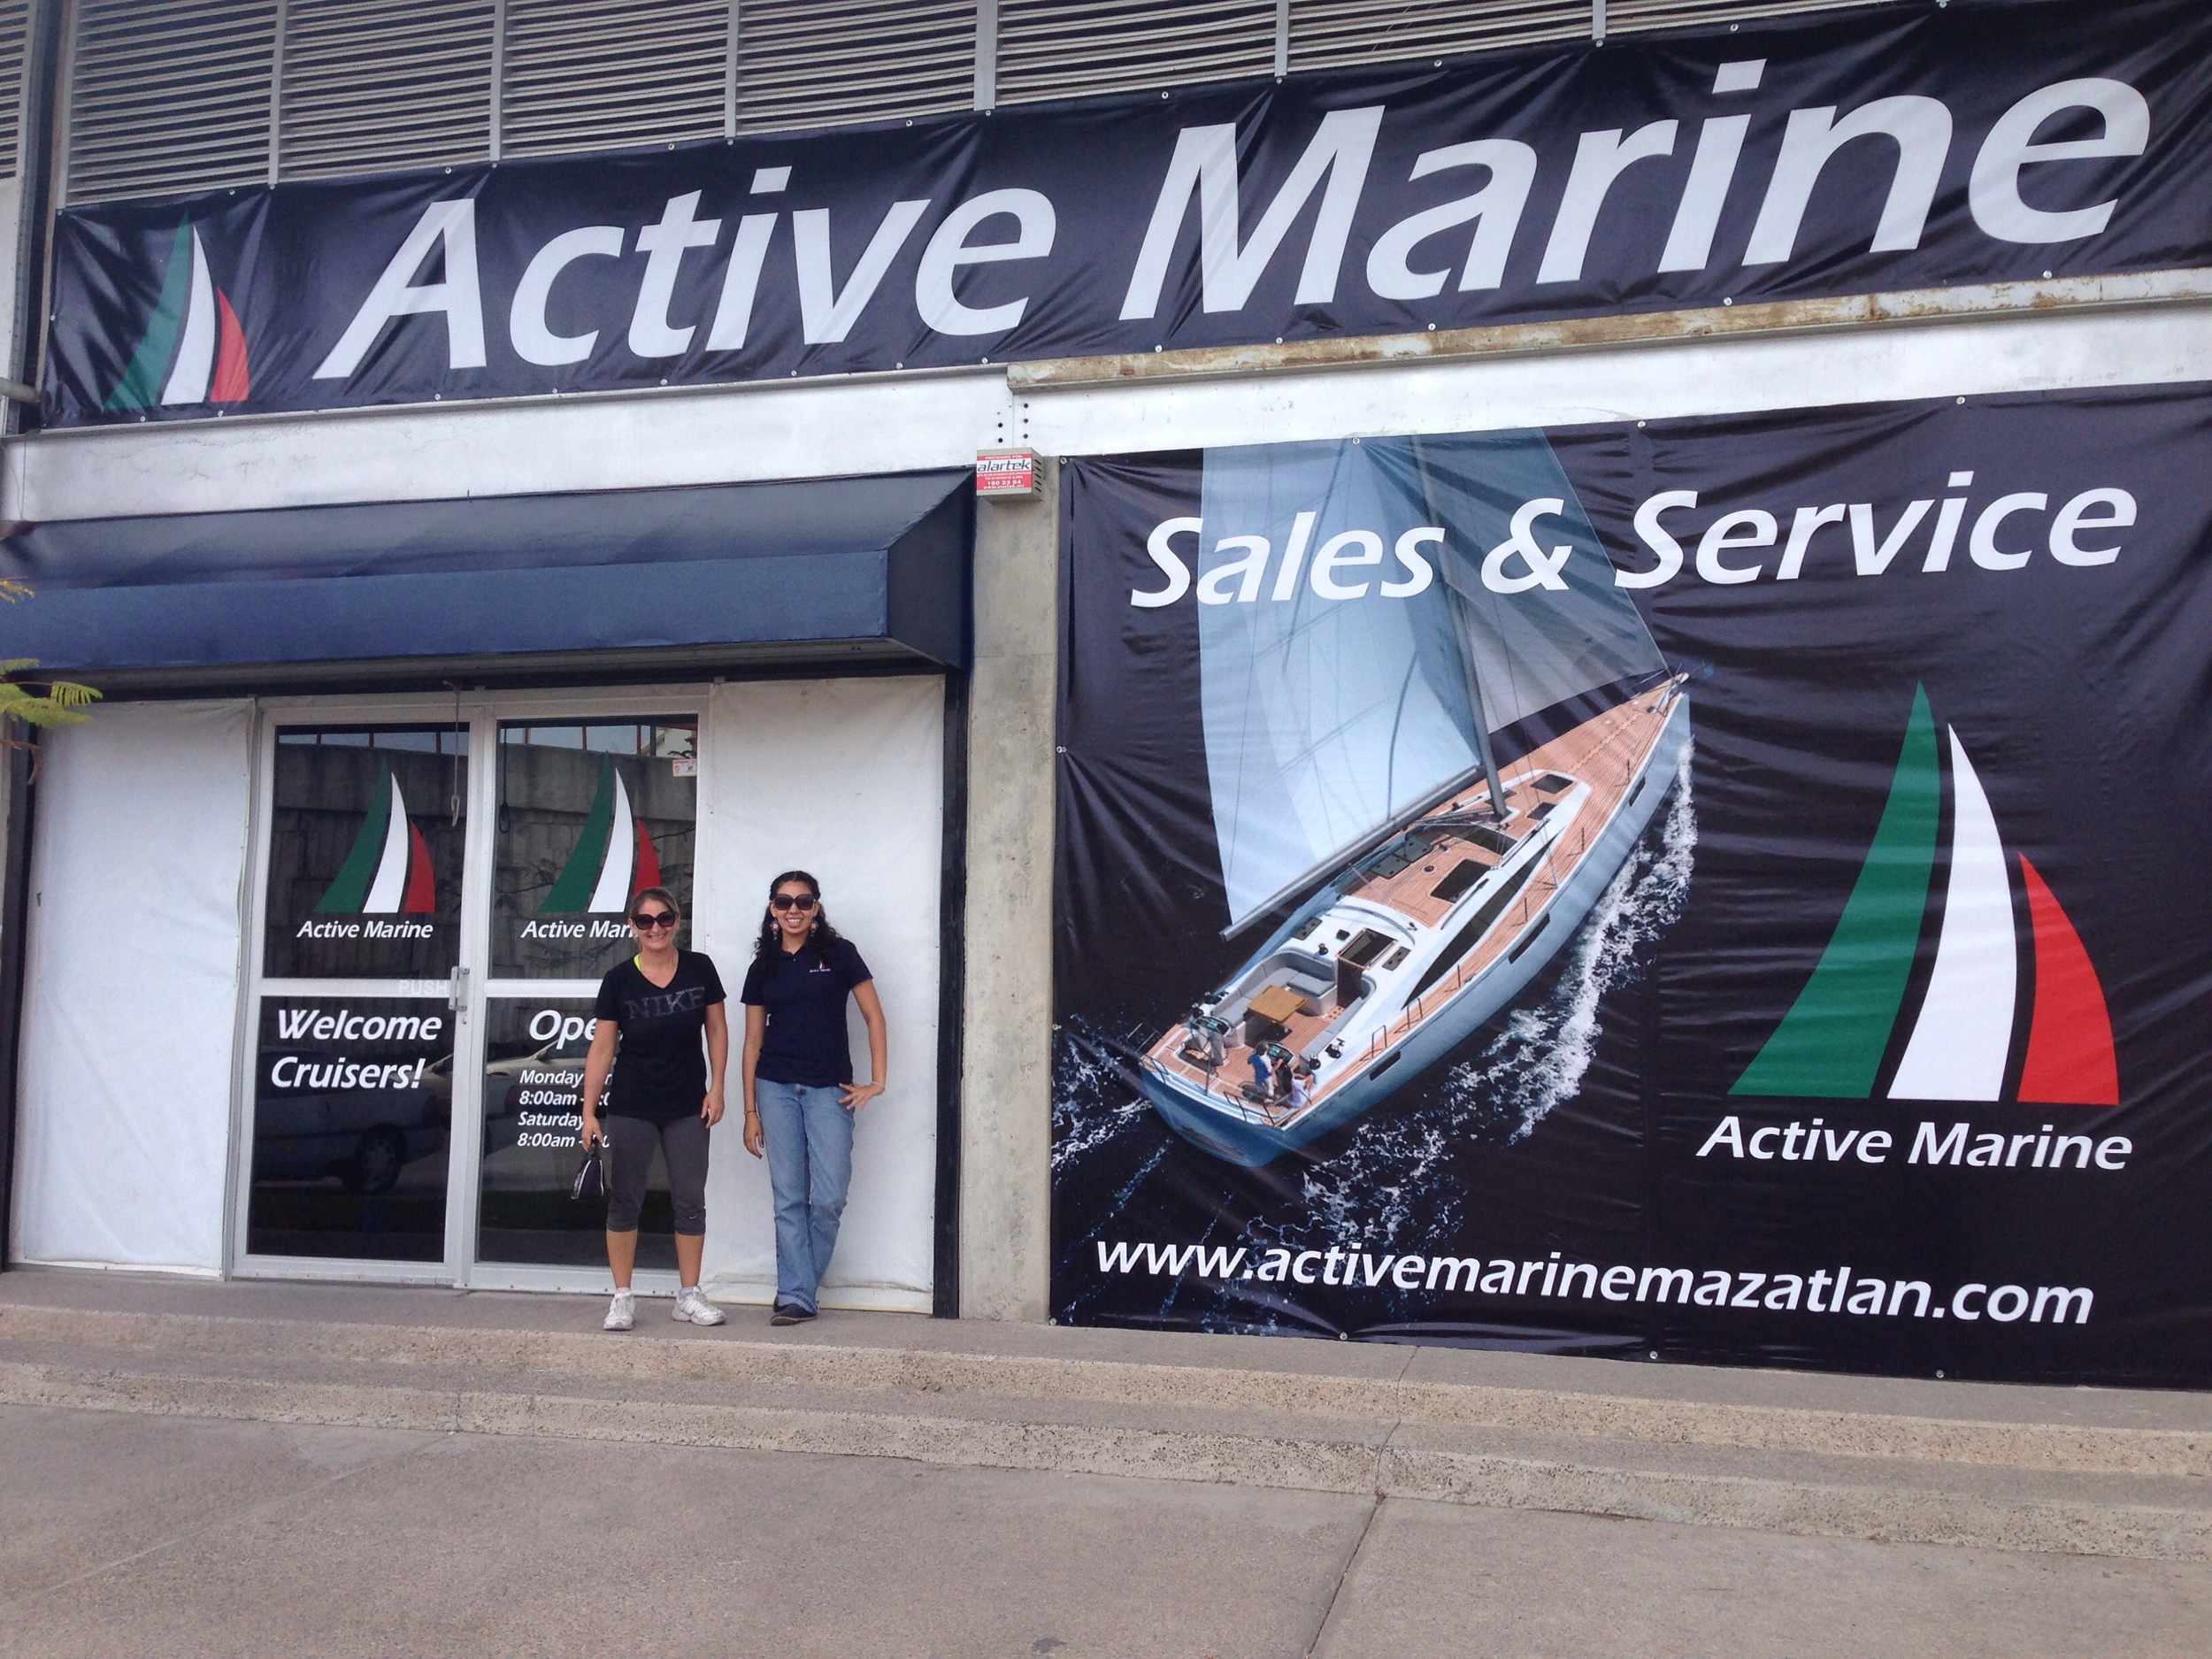 active marine mazatlan new shop front april 2014